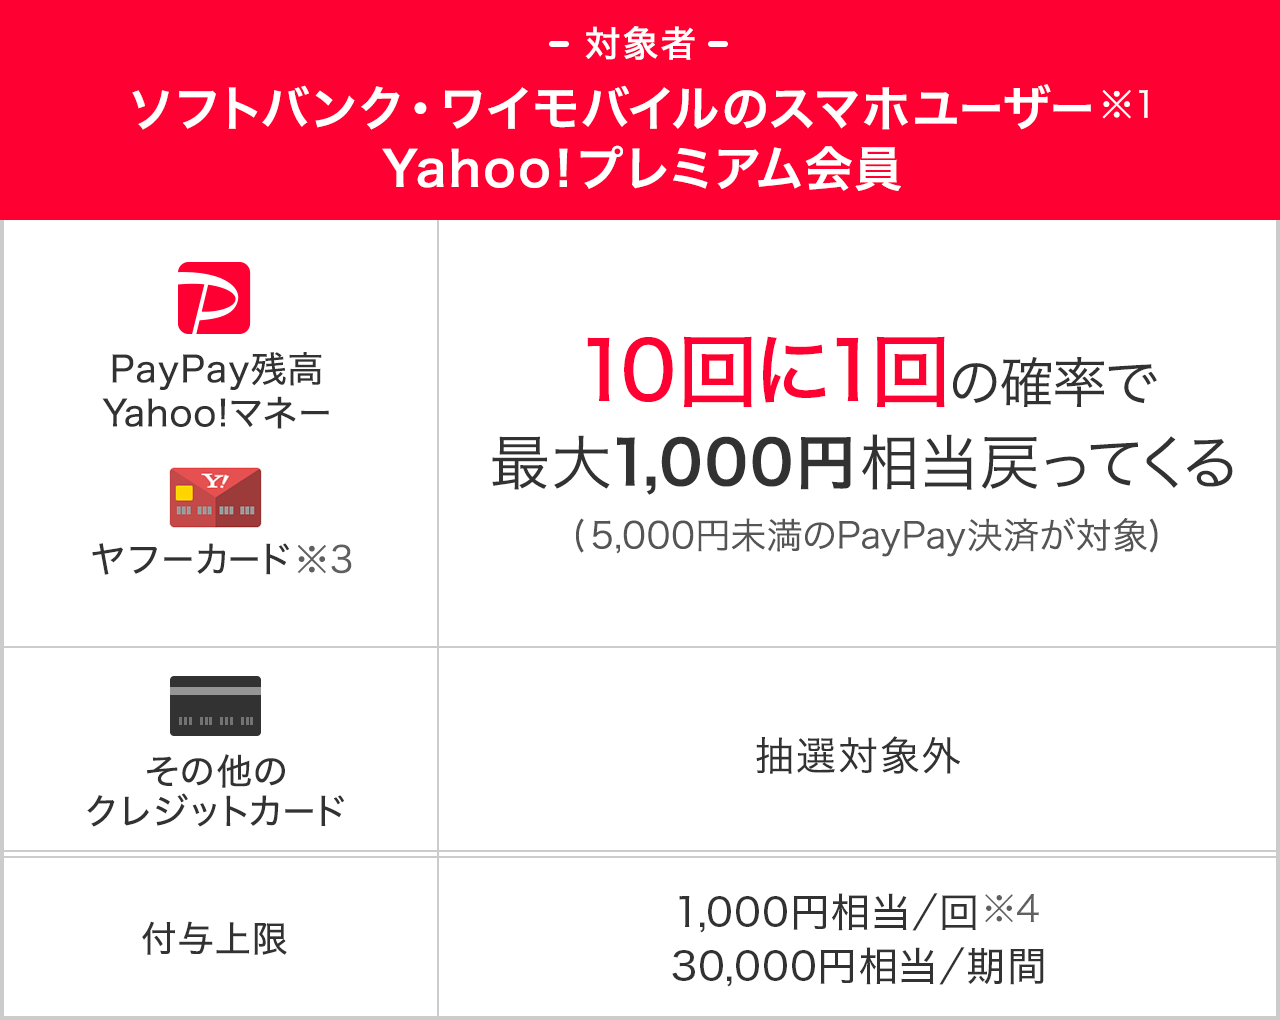 https://image.paypay.ne.jp/page/event/lunch/images/img_table_02.png